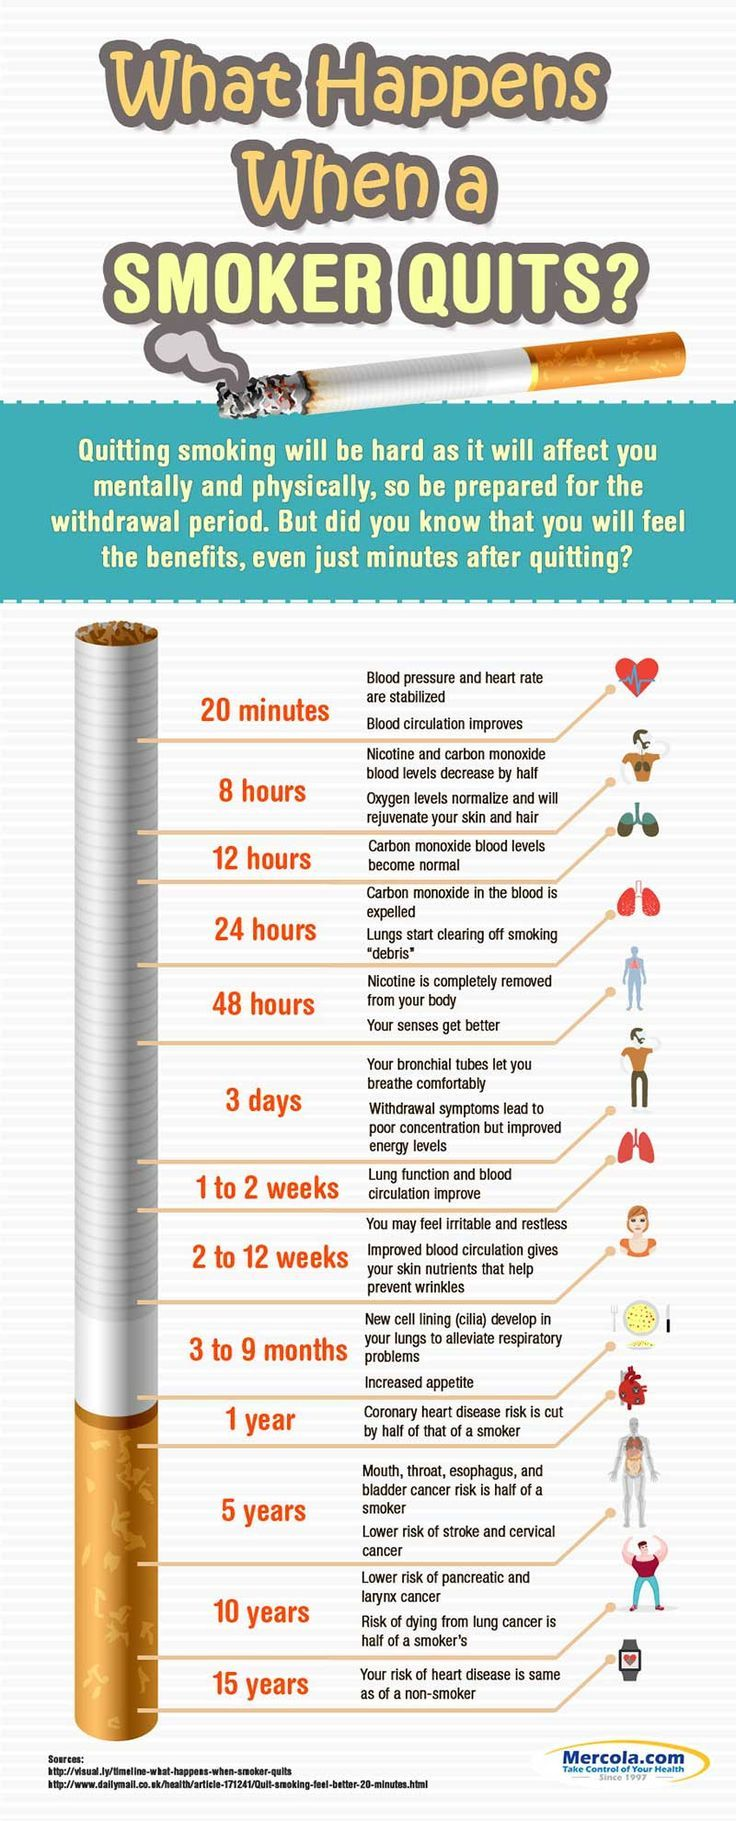 Side effects of dating a smoker - Robimek